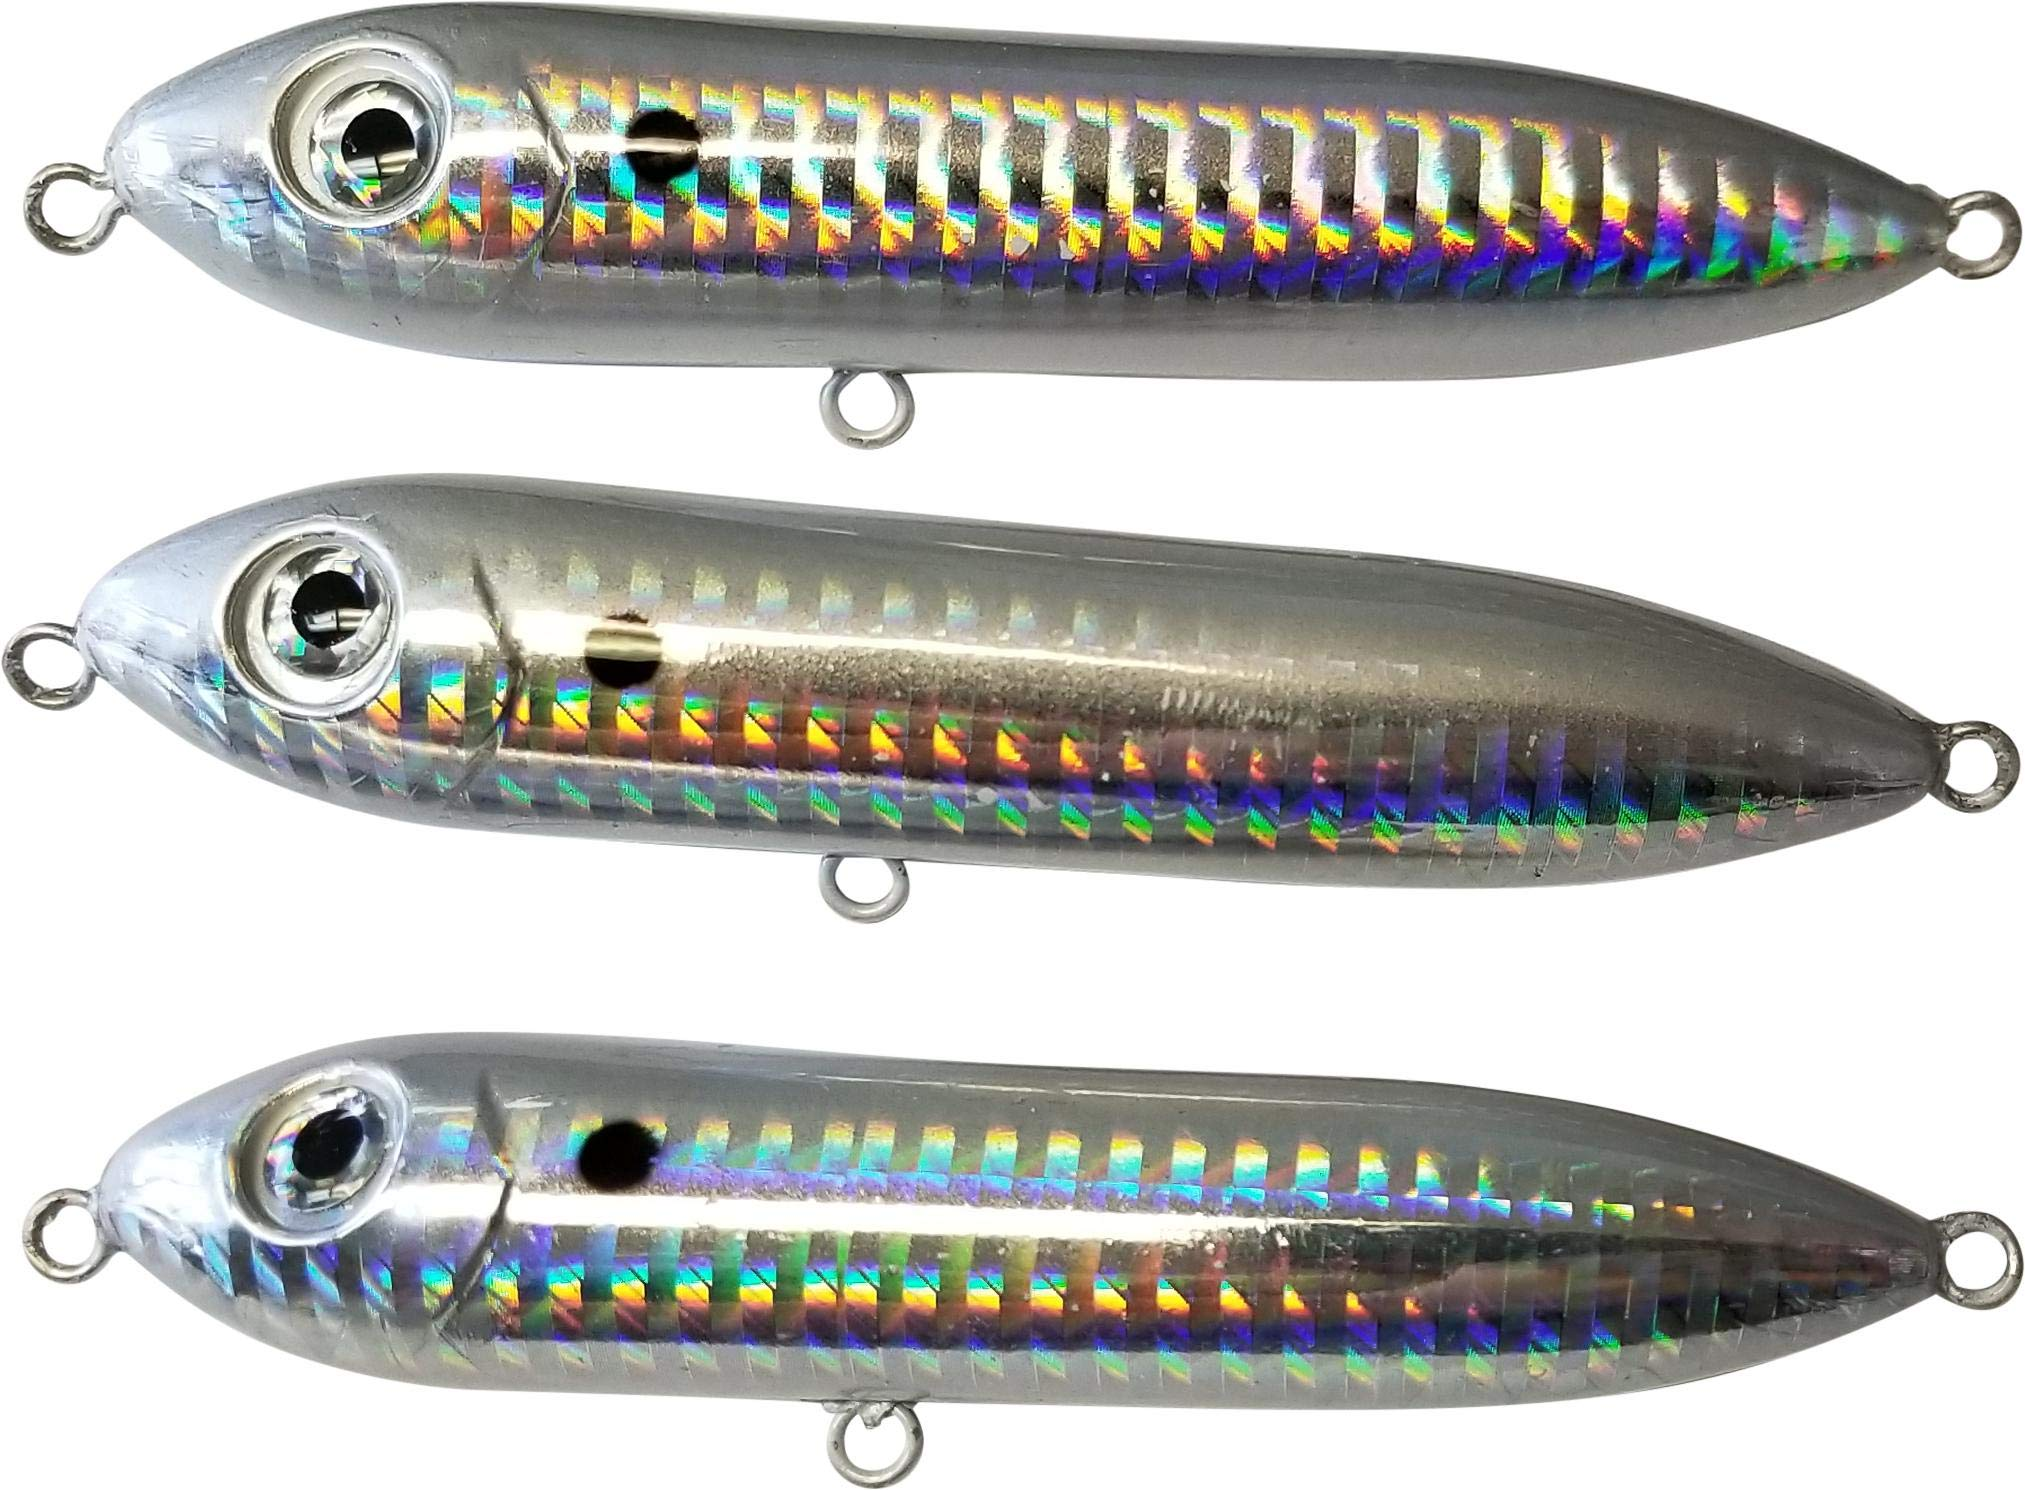 Catfish Rattling Lure for Catfishing and Striper Fishing, Peg Line Float for Santee Rig, 4 Inch (3-Pack, Threadfin Shad)